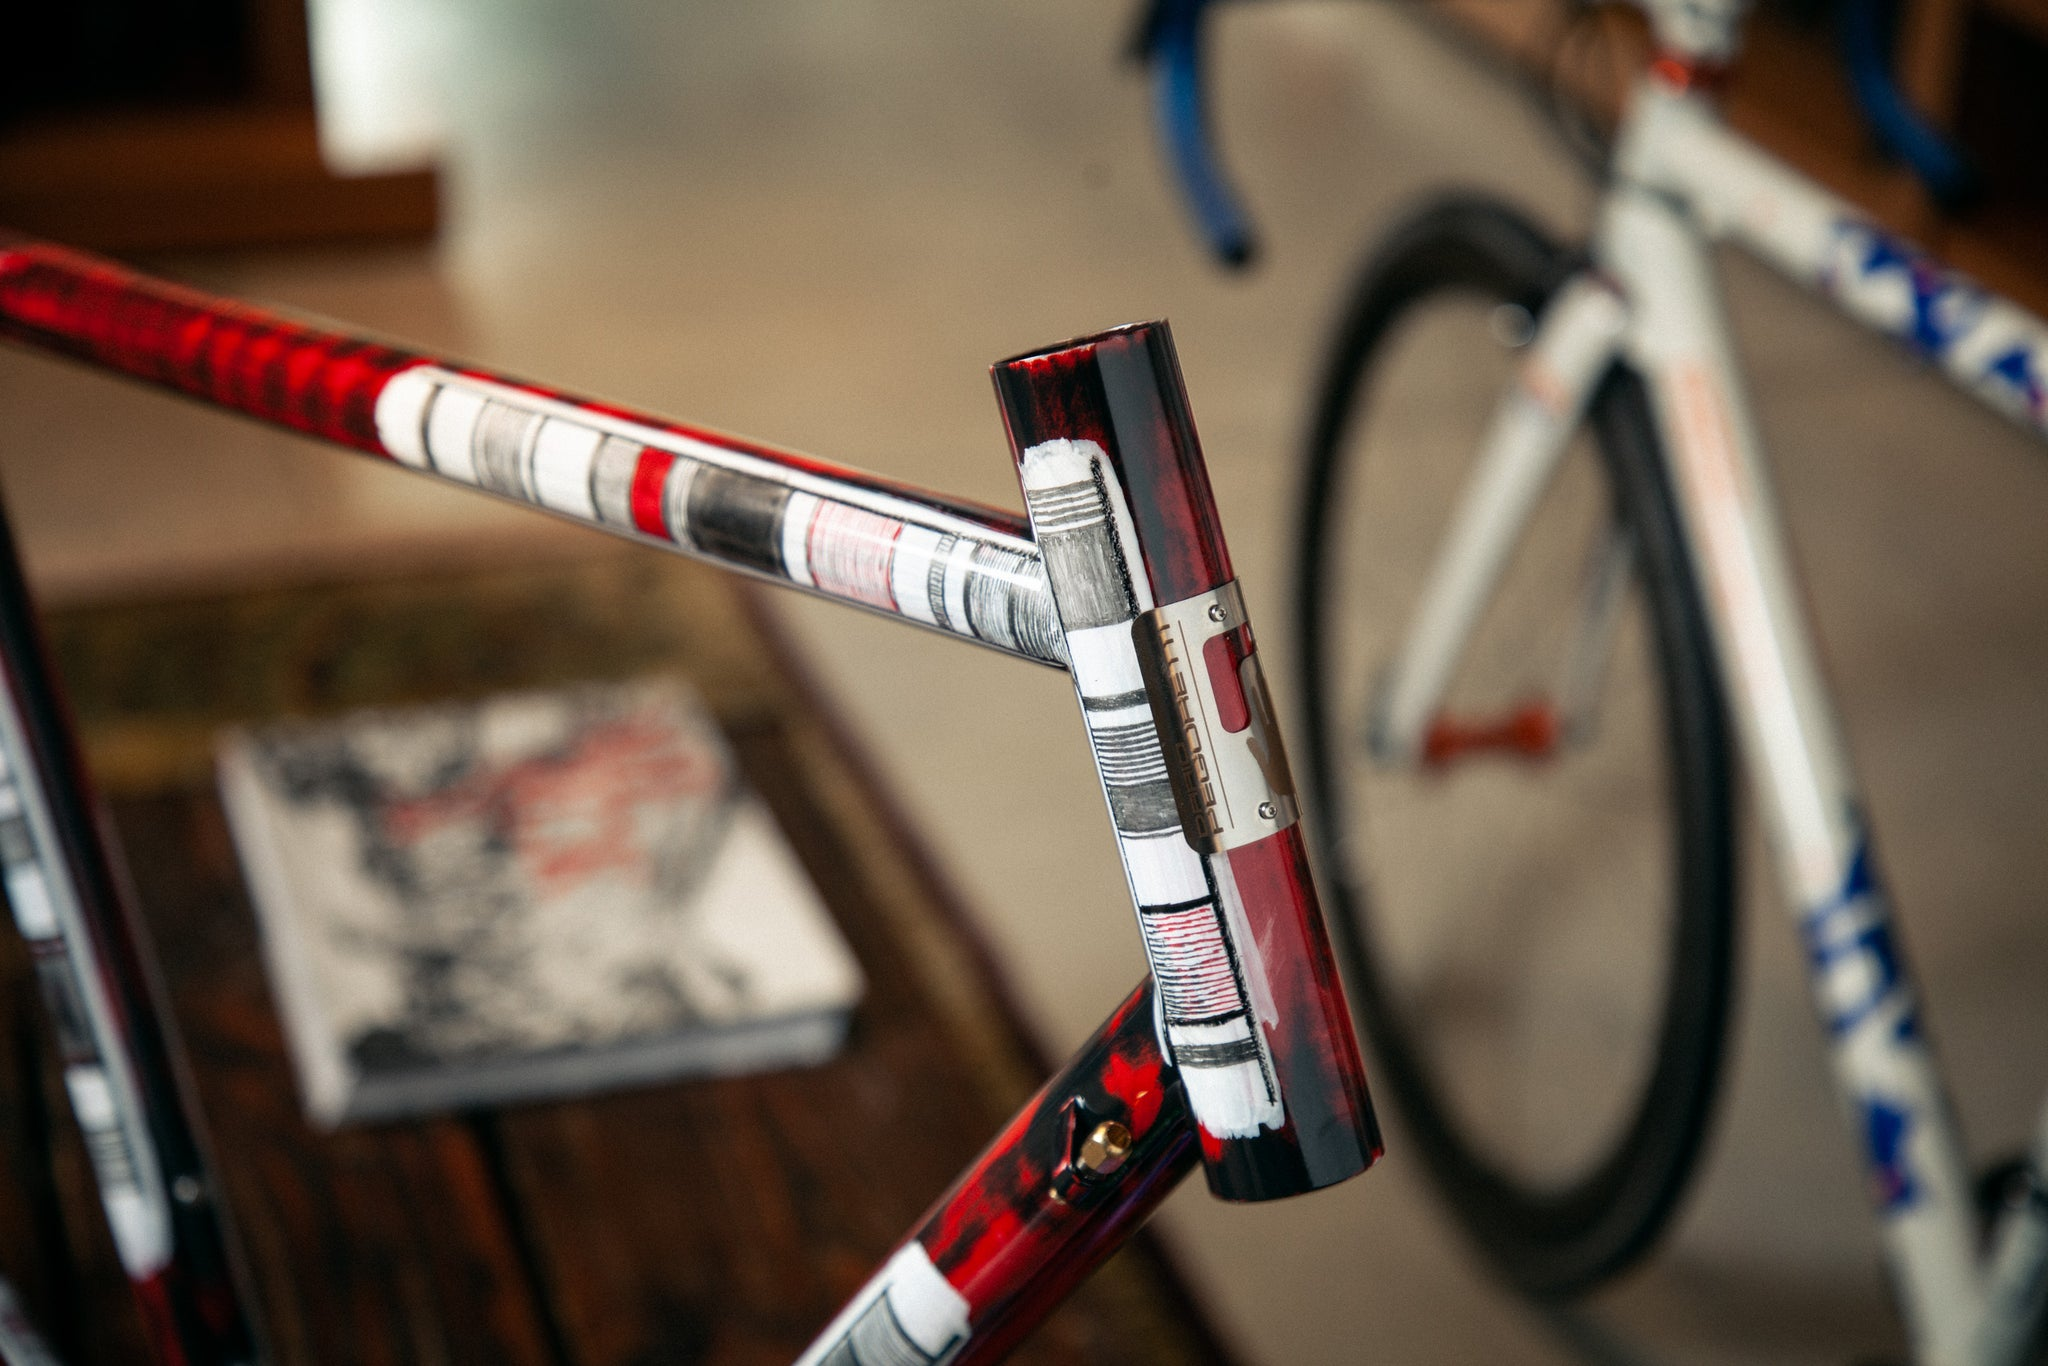 https://abovecategorycycling.com/blogs/gallery/gallery-a-wine-red-pegoretti-mxxxxxo frameset 5